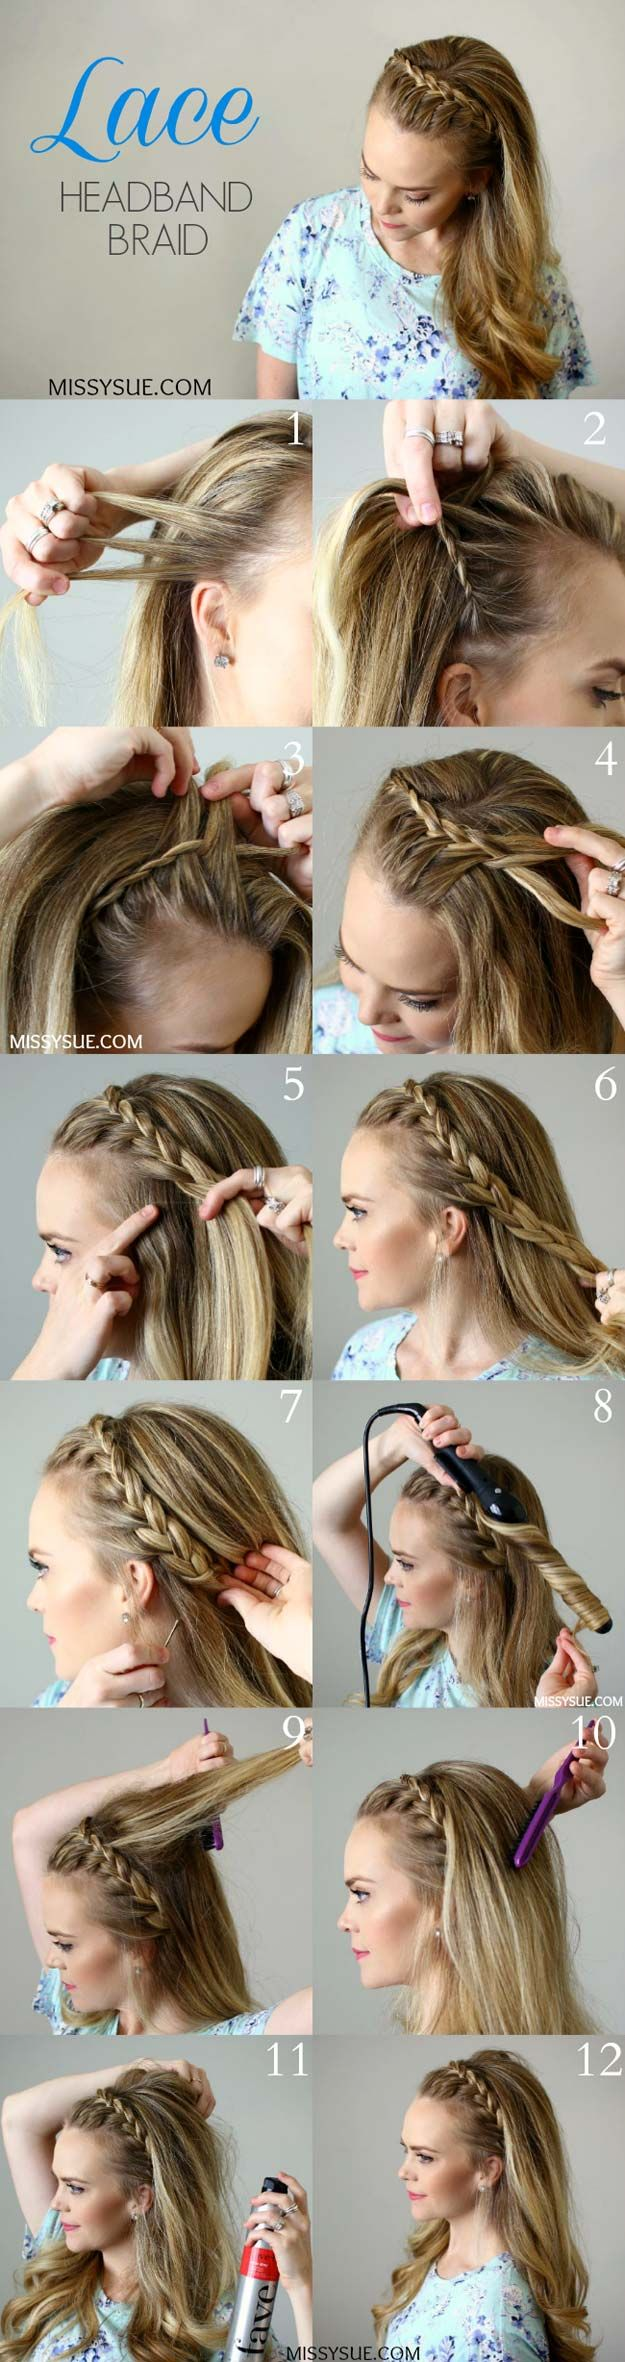 best 25+ cool braids ideas on pinterest | cool hairstyles, braided